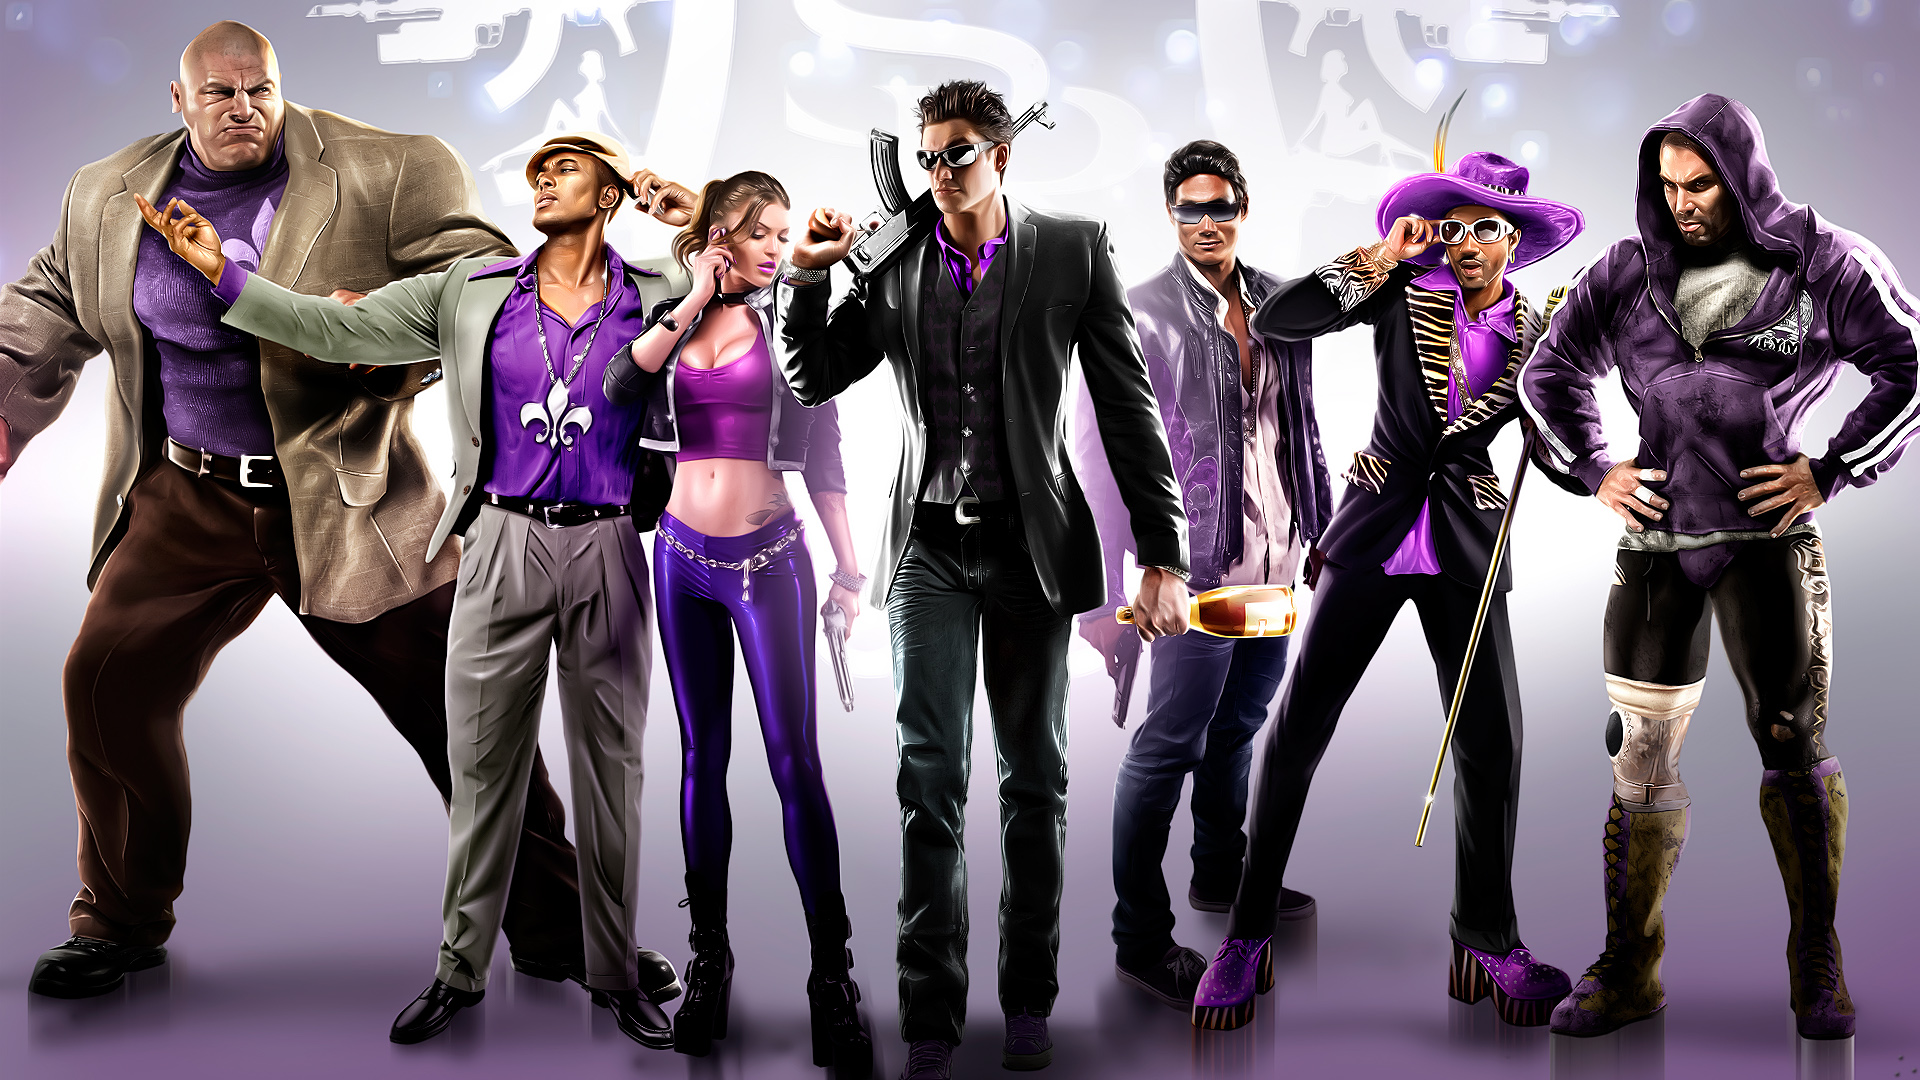 Saints row: the third hd wallpaper | background image | 2560x1600.